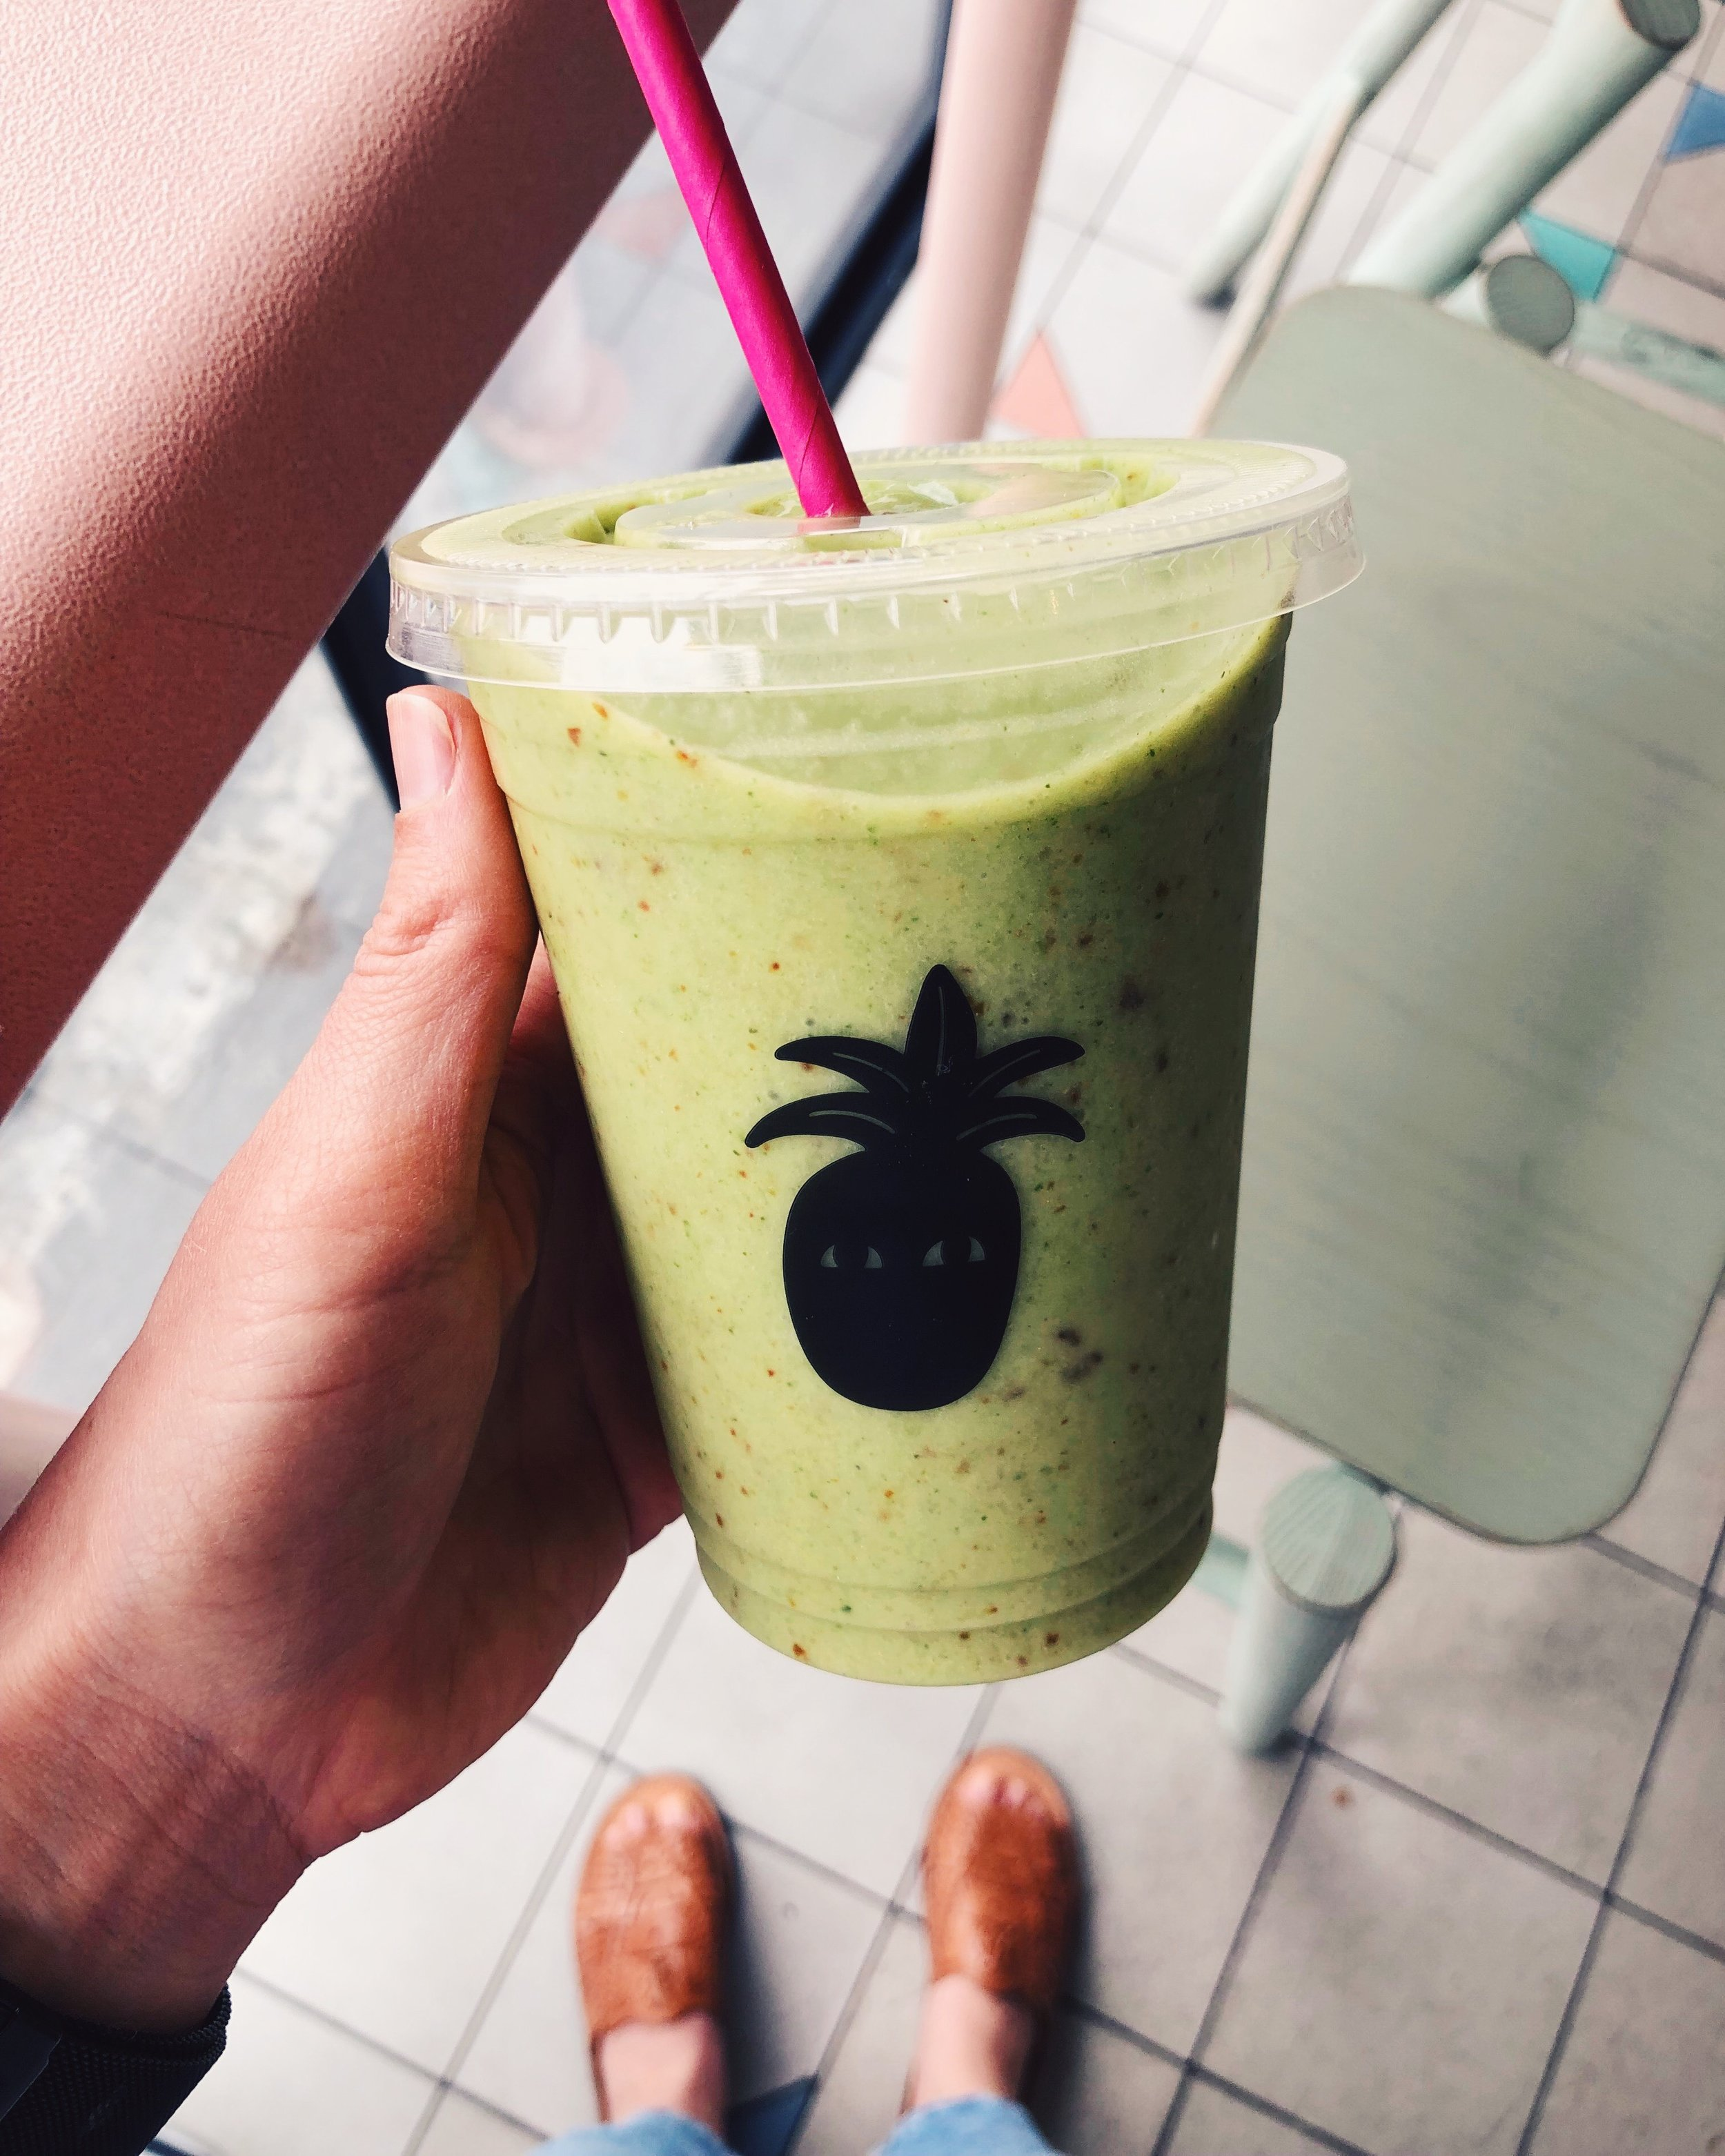 Kale and Date smoothie from Vacation